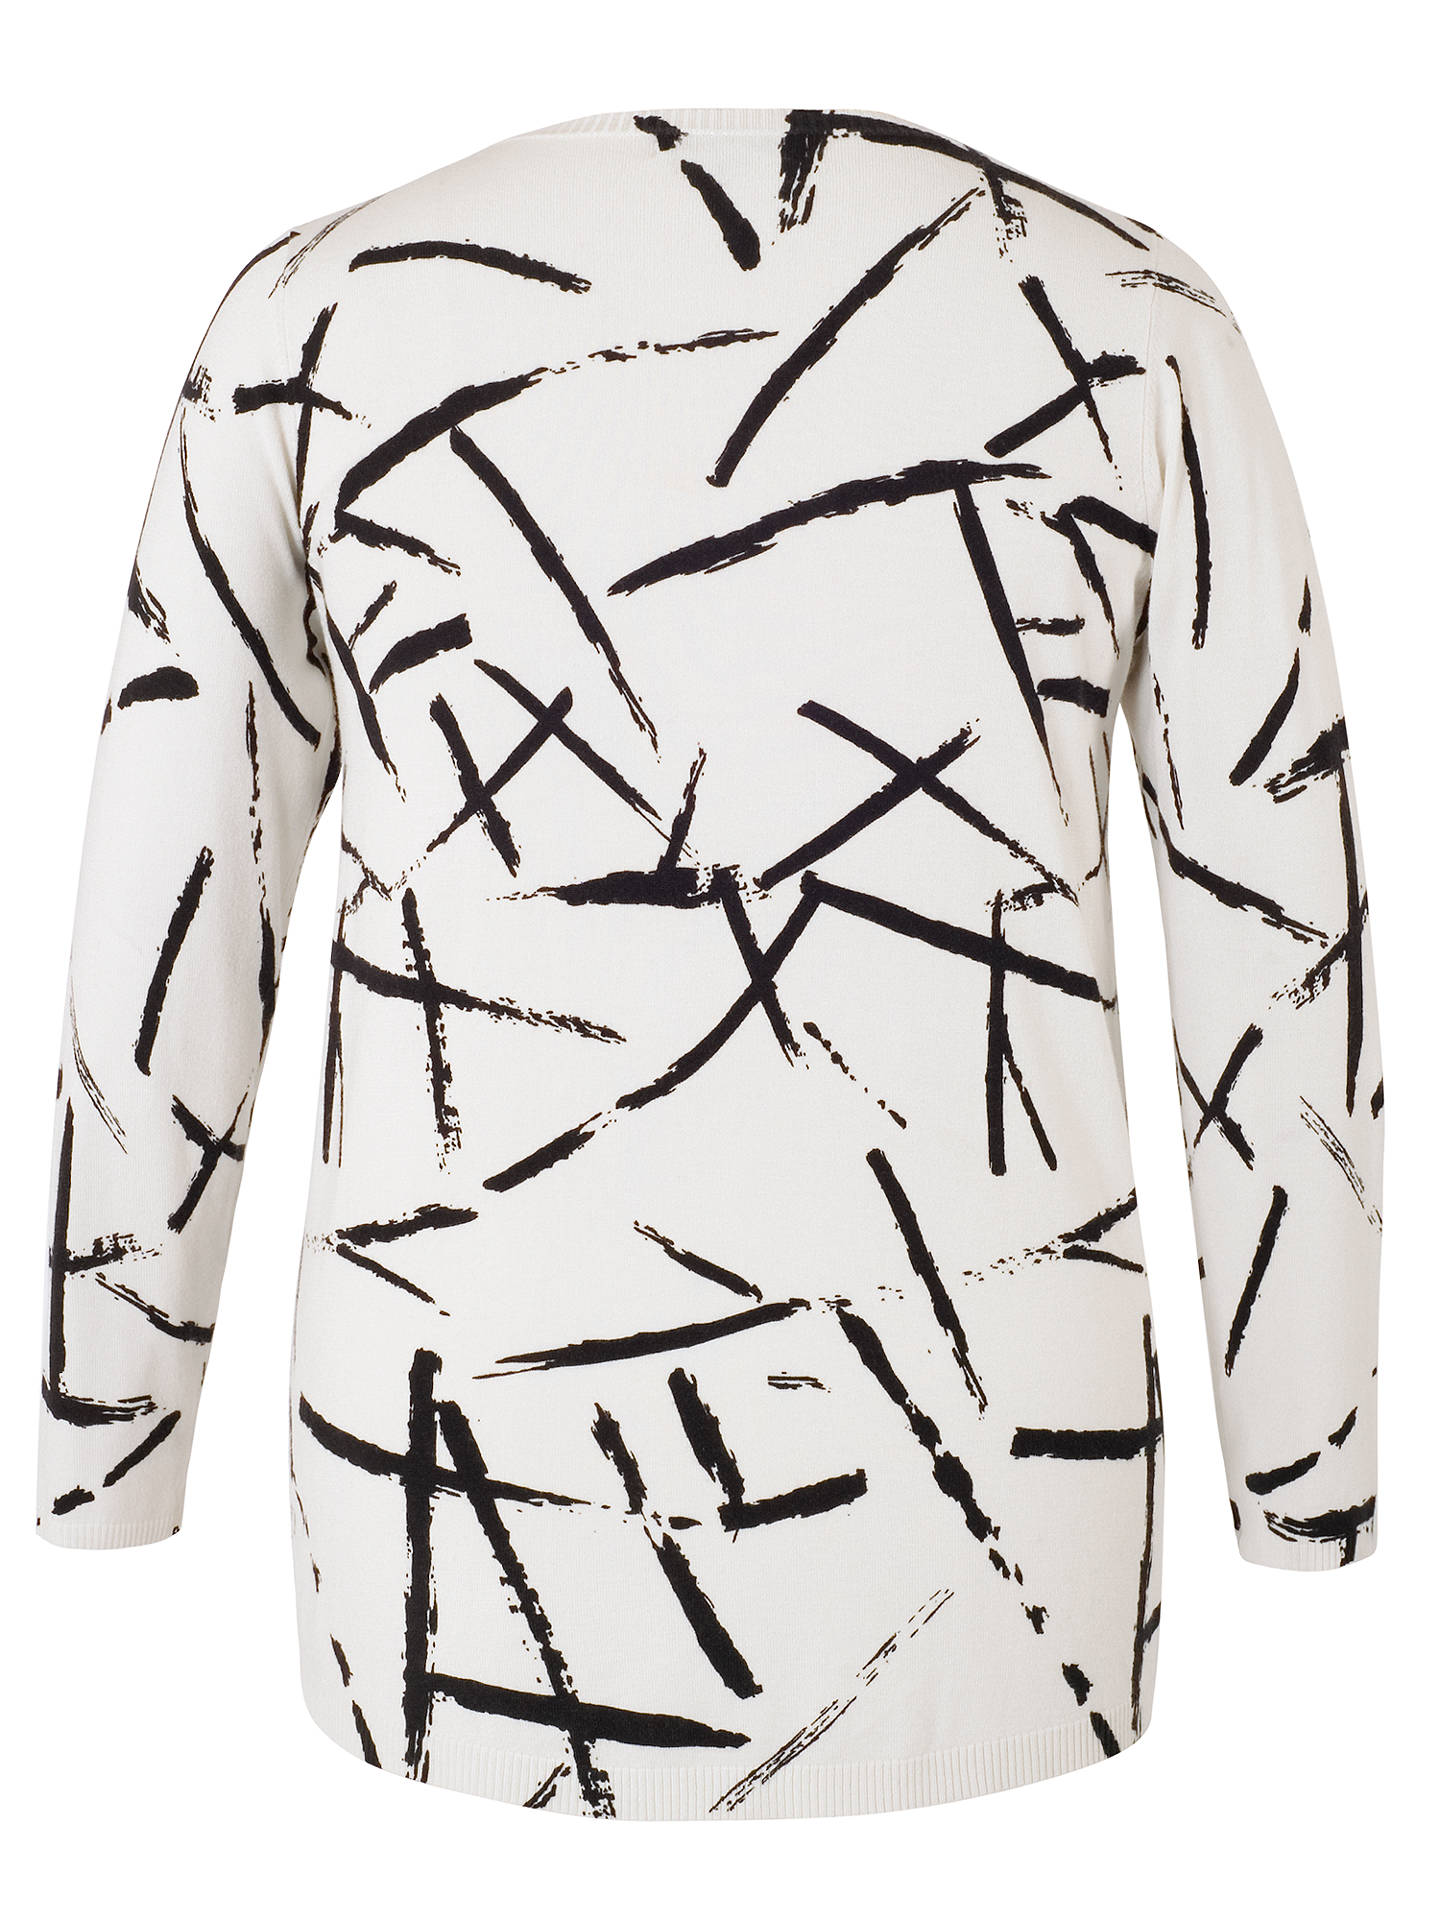 BuyChesca Brush Strokes Jumper, Ivory/Black, 16-18 Online at johnlewis.com